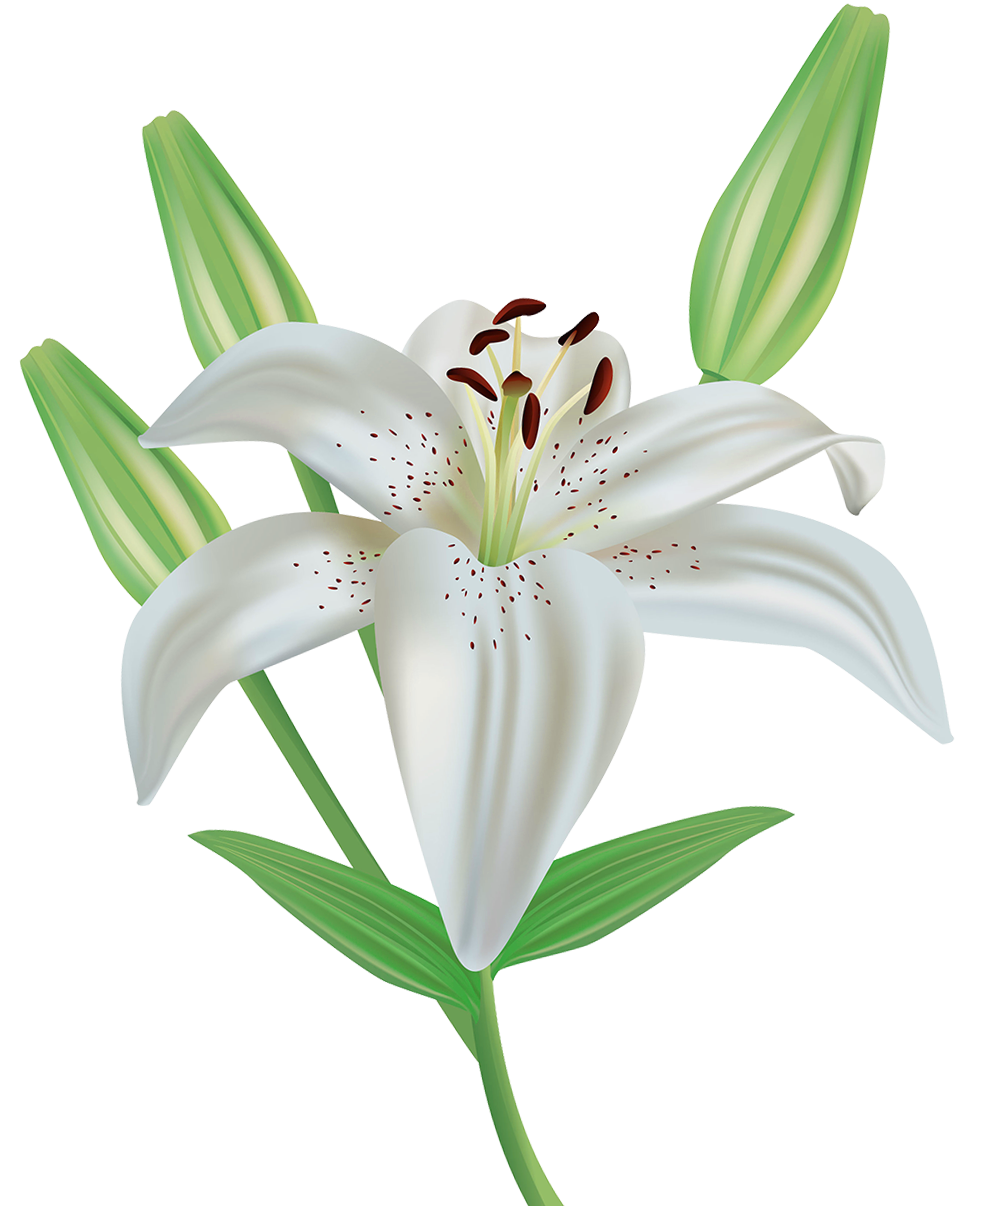 Lily flower png. Clipart image gallery yopriceville